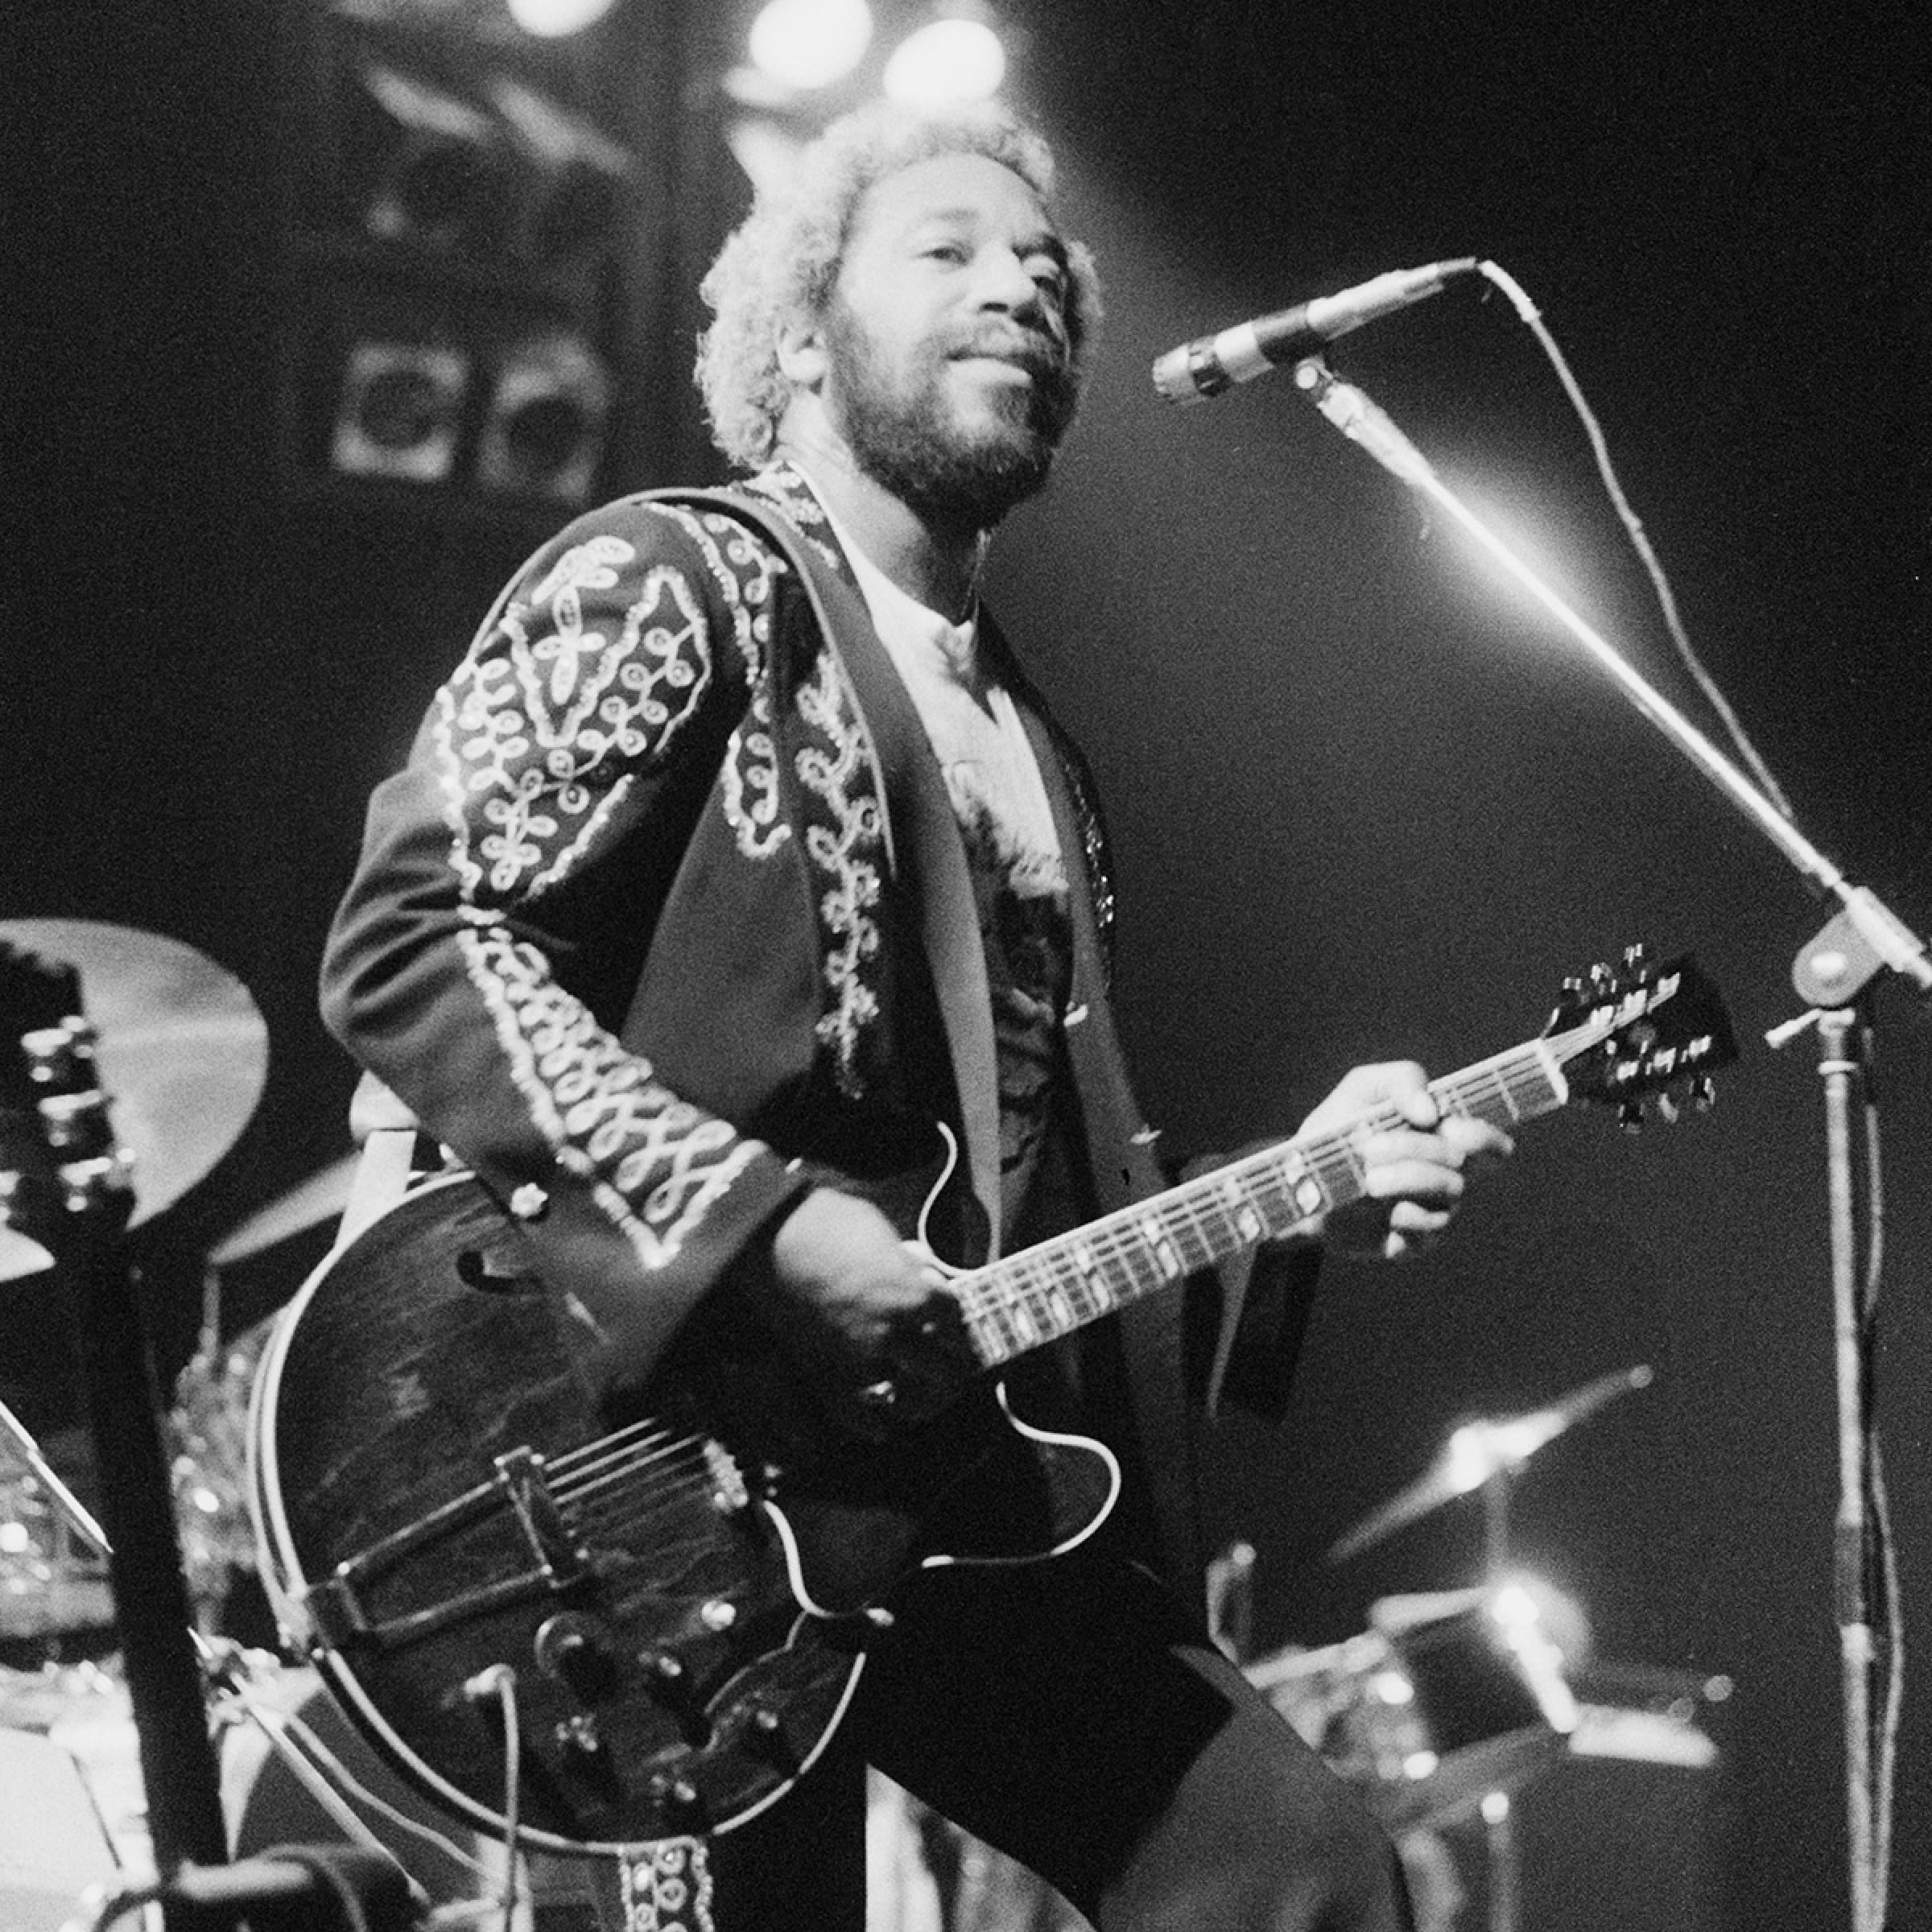 Guitarist Howard E. Scott performing with American funk band, War, at the Hammersmith Odeon, London, 22nd June 1976.